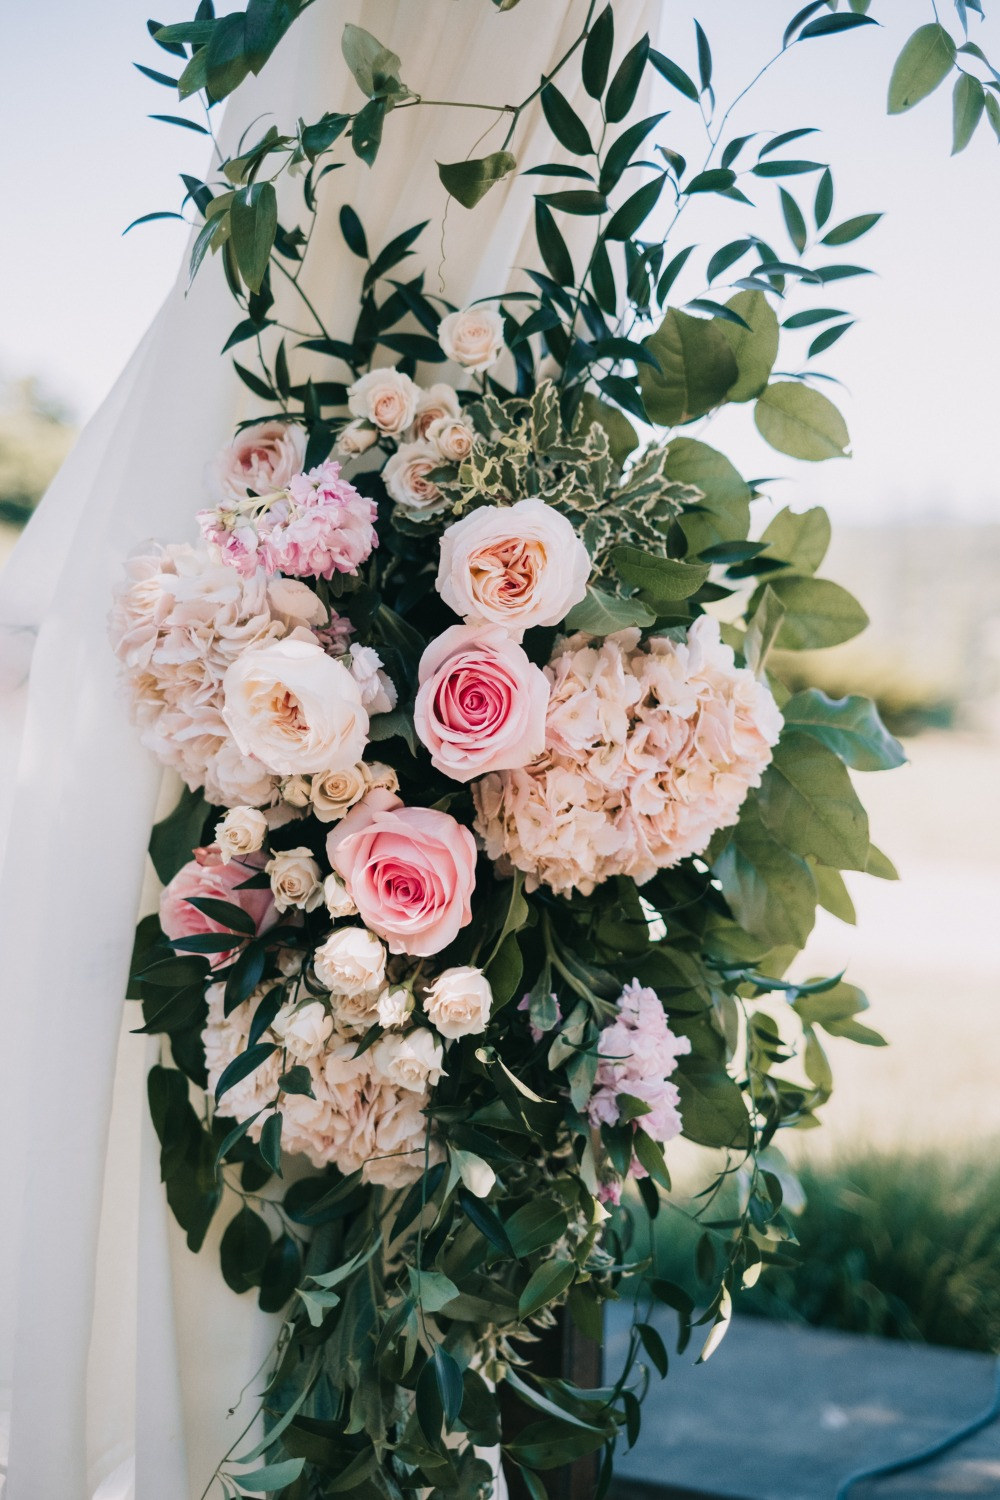 Can You Spot The Subtle Disney Theme Of This Pink And White Wedding?